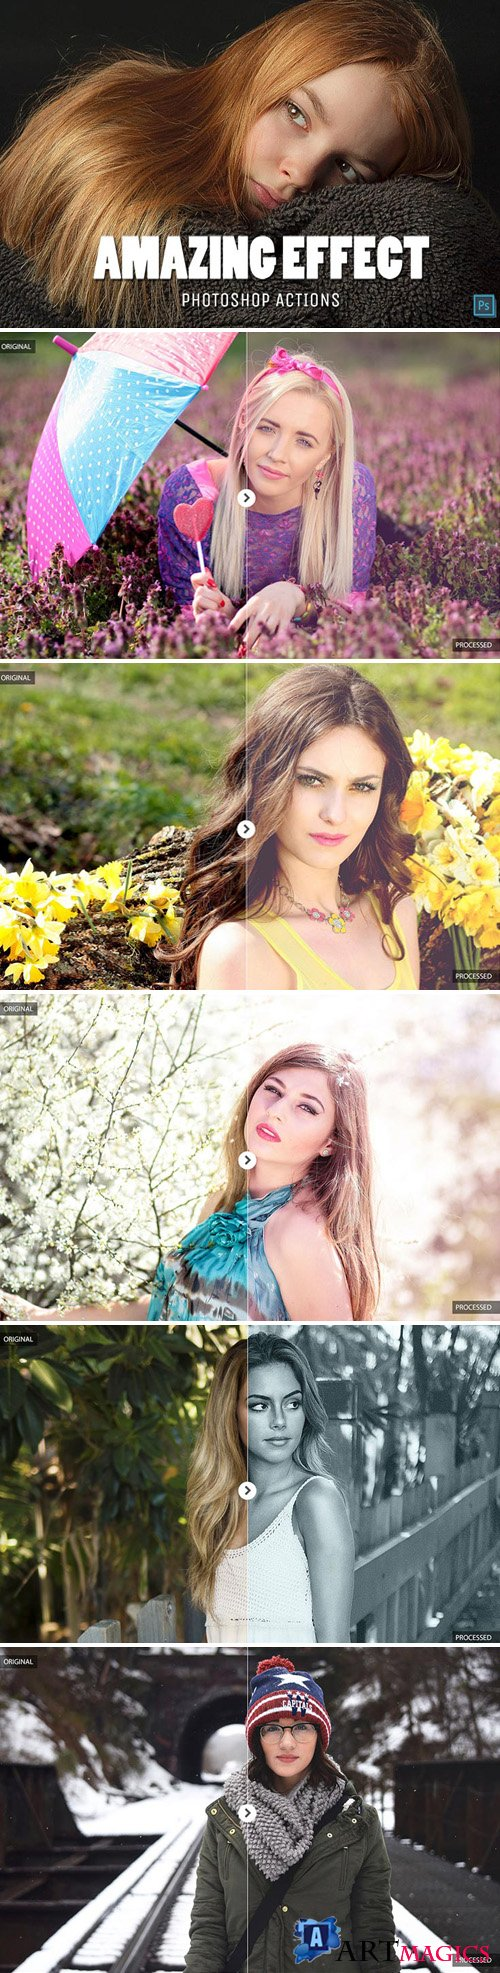 30 Amazing Effect Photoshop Actions